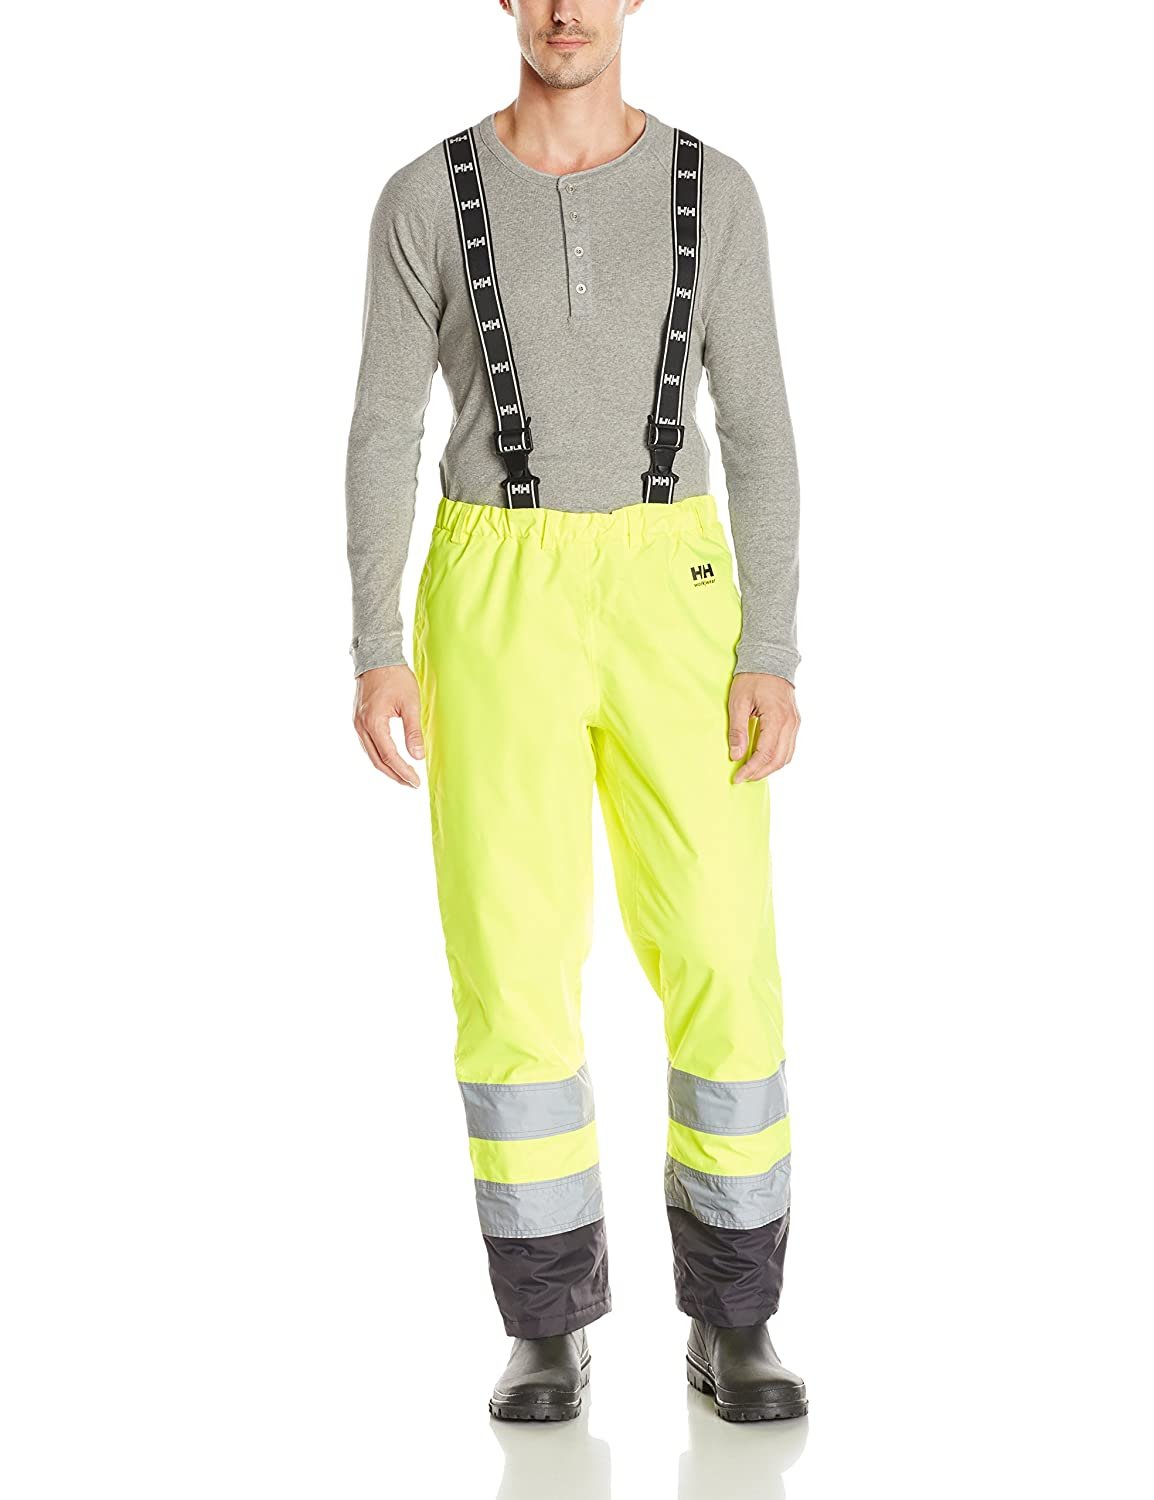 Helly Hansen Workwear Warnschutz Winter-Latzhose Alta Insulated CL2 wasserdichte isolierte Regen-Arbeitshose 369 3XL, 70445